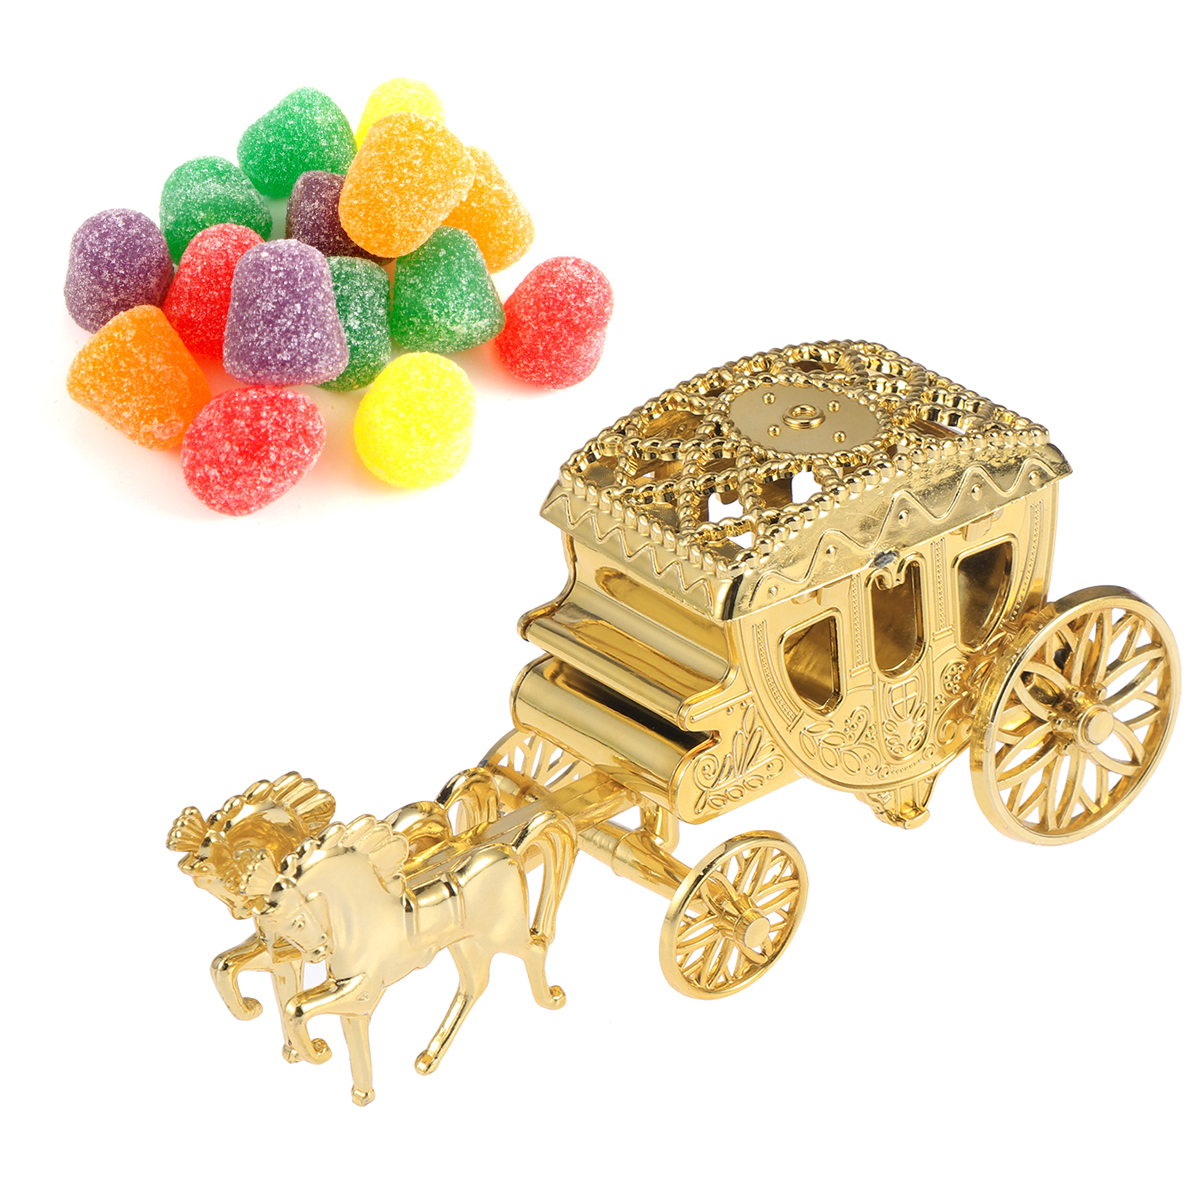 Wedding Favor Gift Boxes: Wedding Carriage Favor Boxes Chocolate Treat Boxes Gift